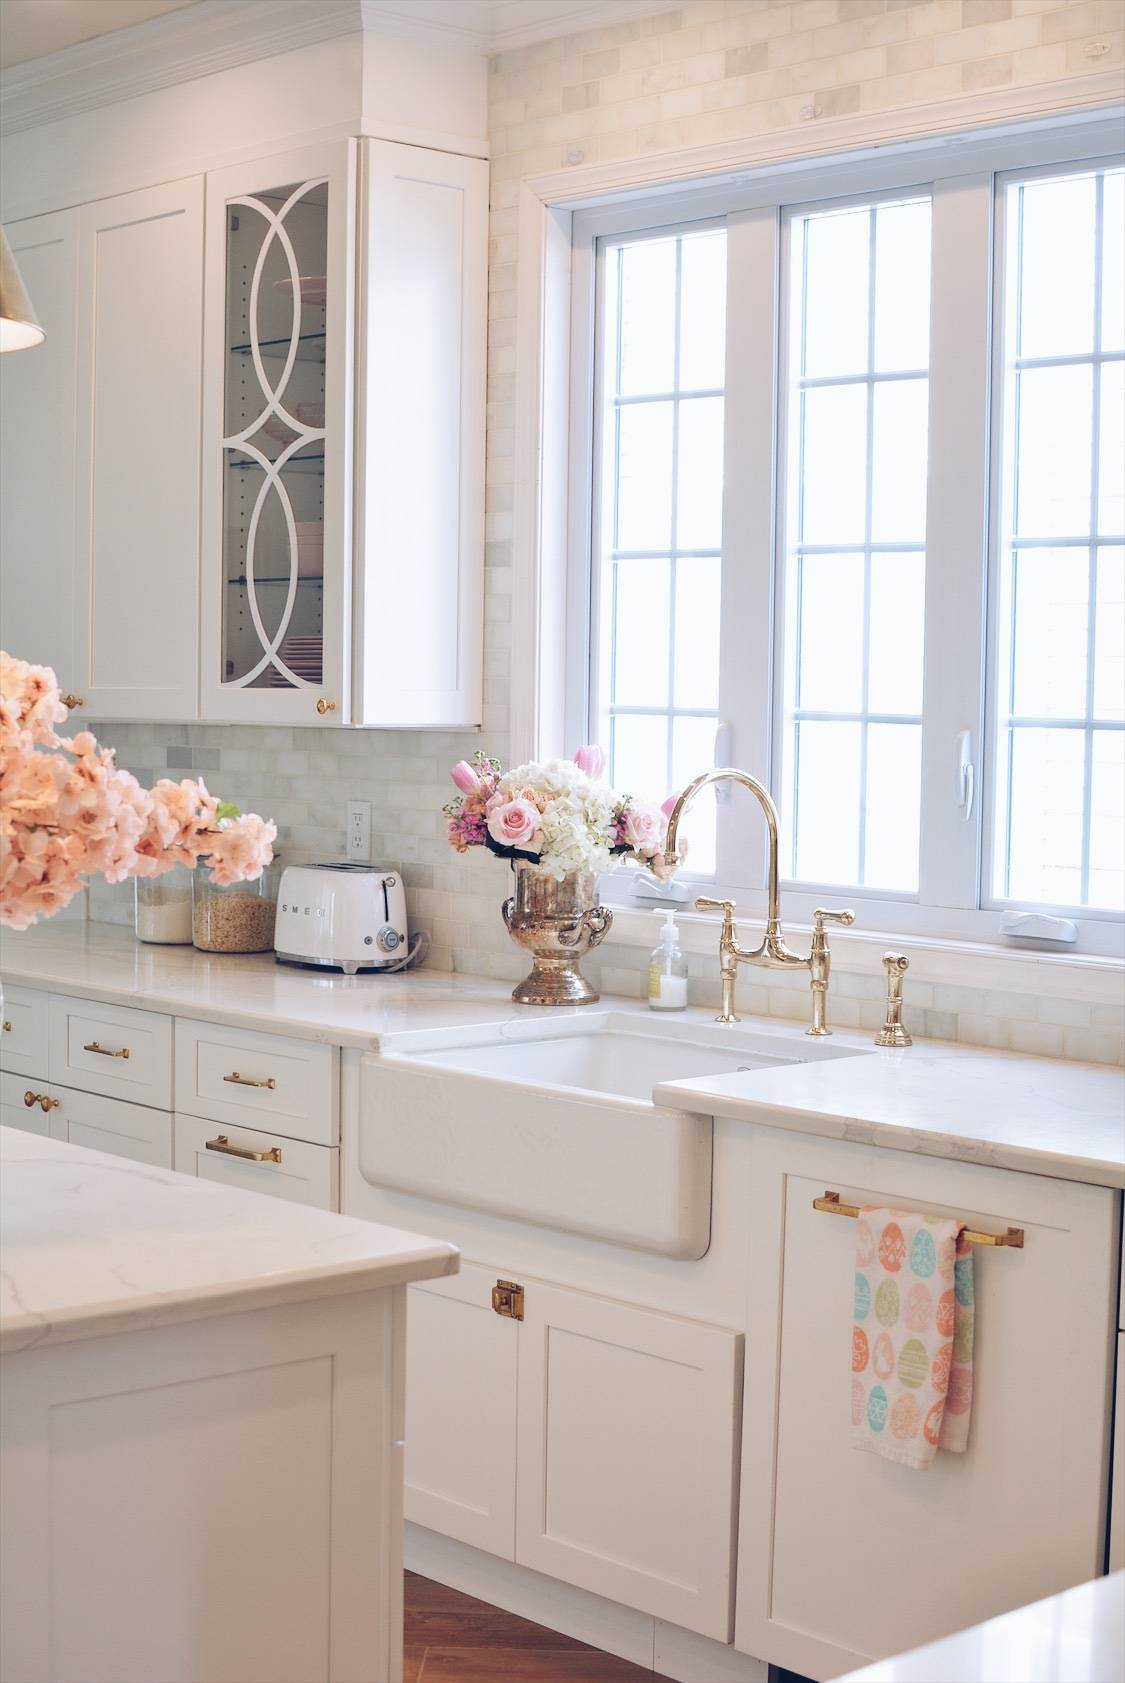 Mullion Cabinet Doors How To Add Overlays To A Glass Kitchen Cabinet The Pink Dream